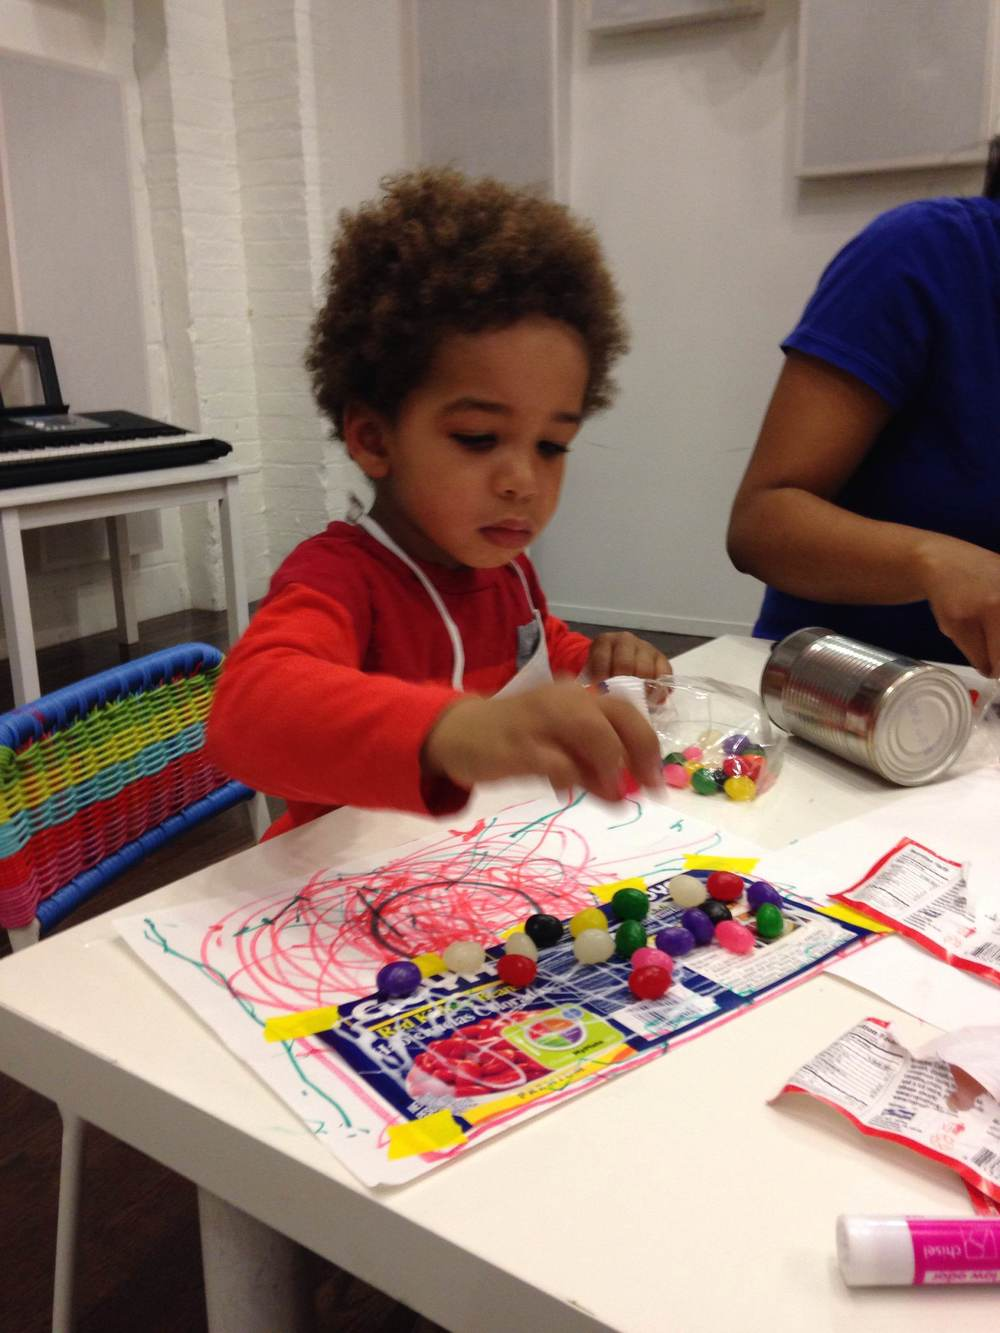 Artist, Dante working @ PLAY Greenpoint